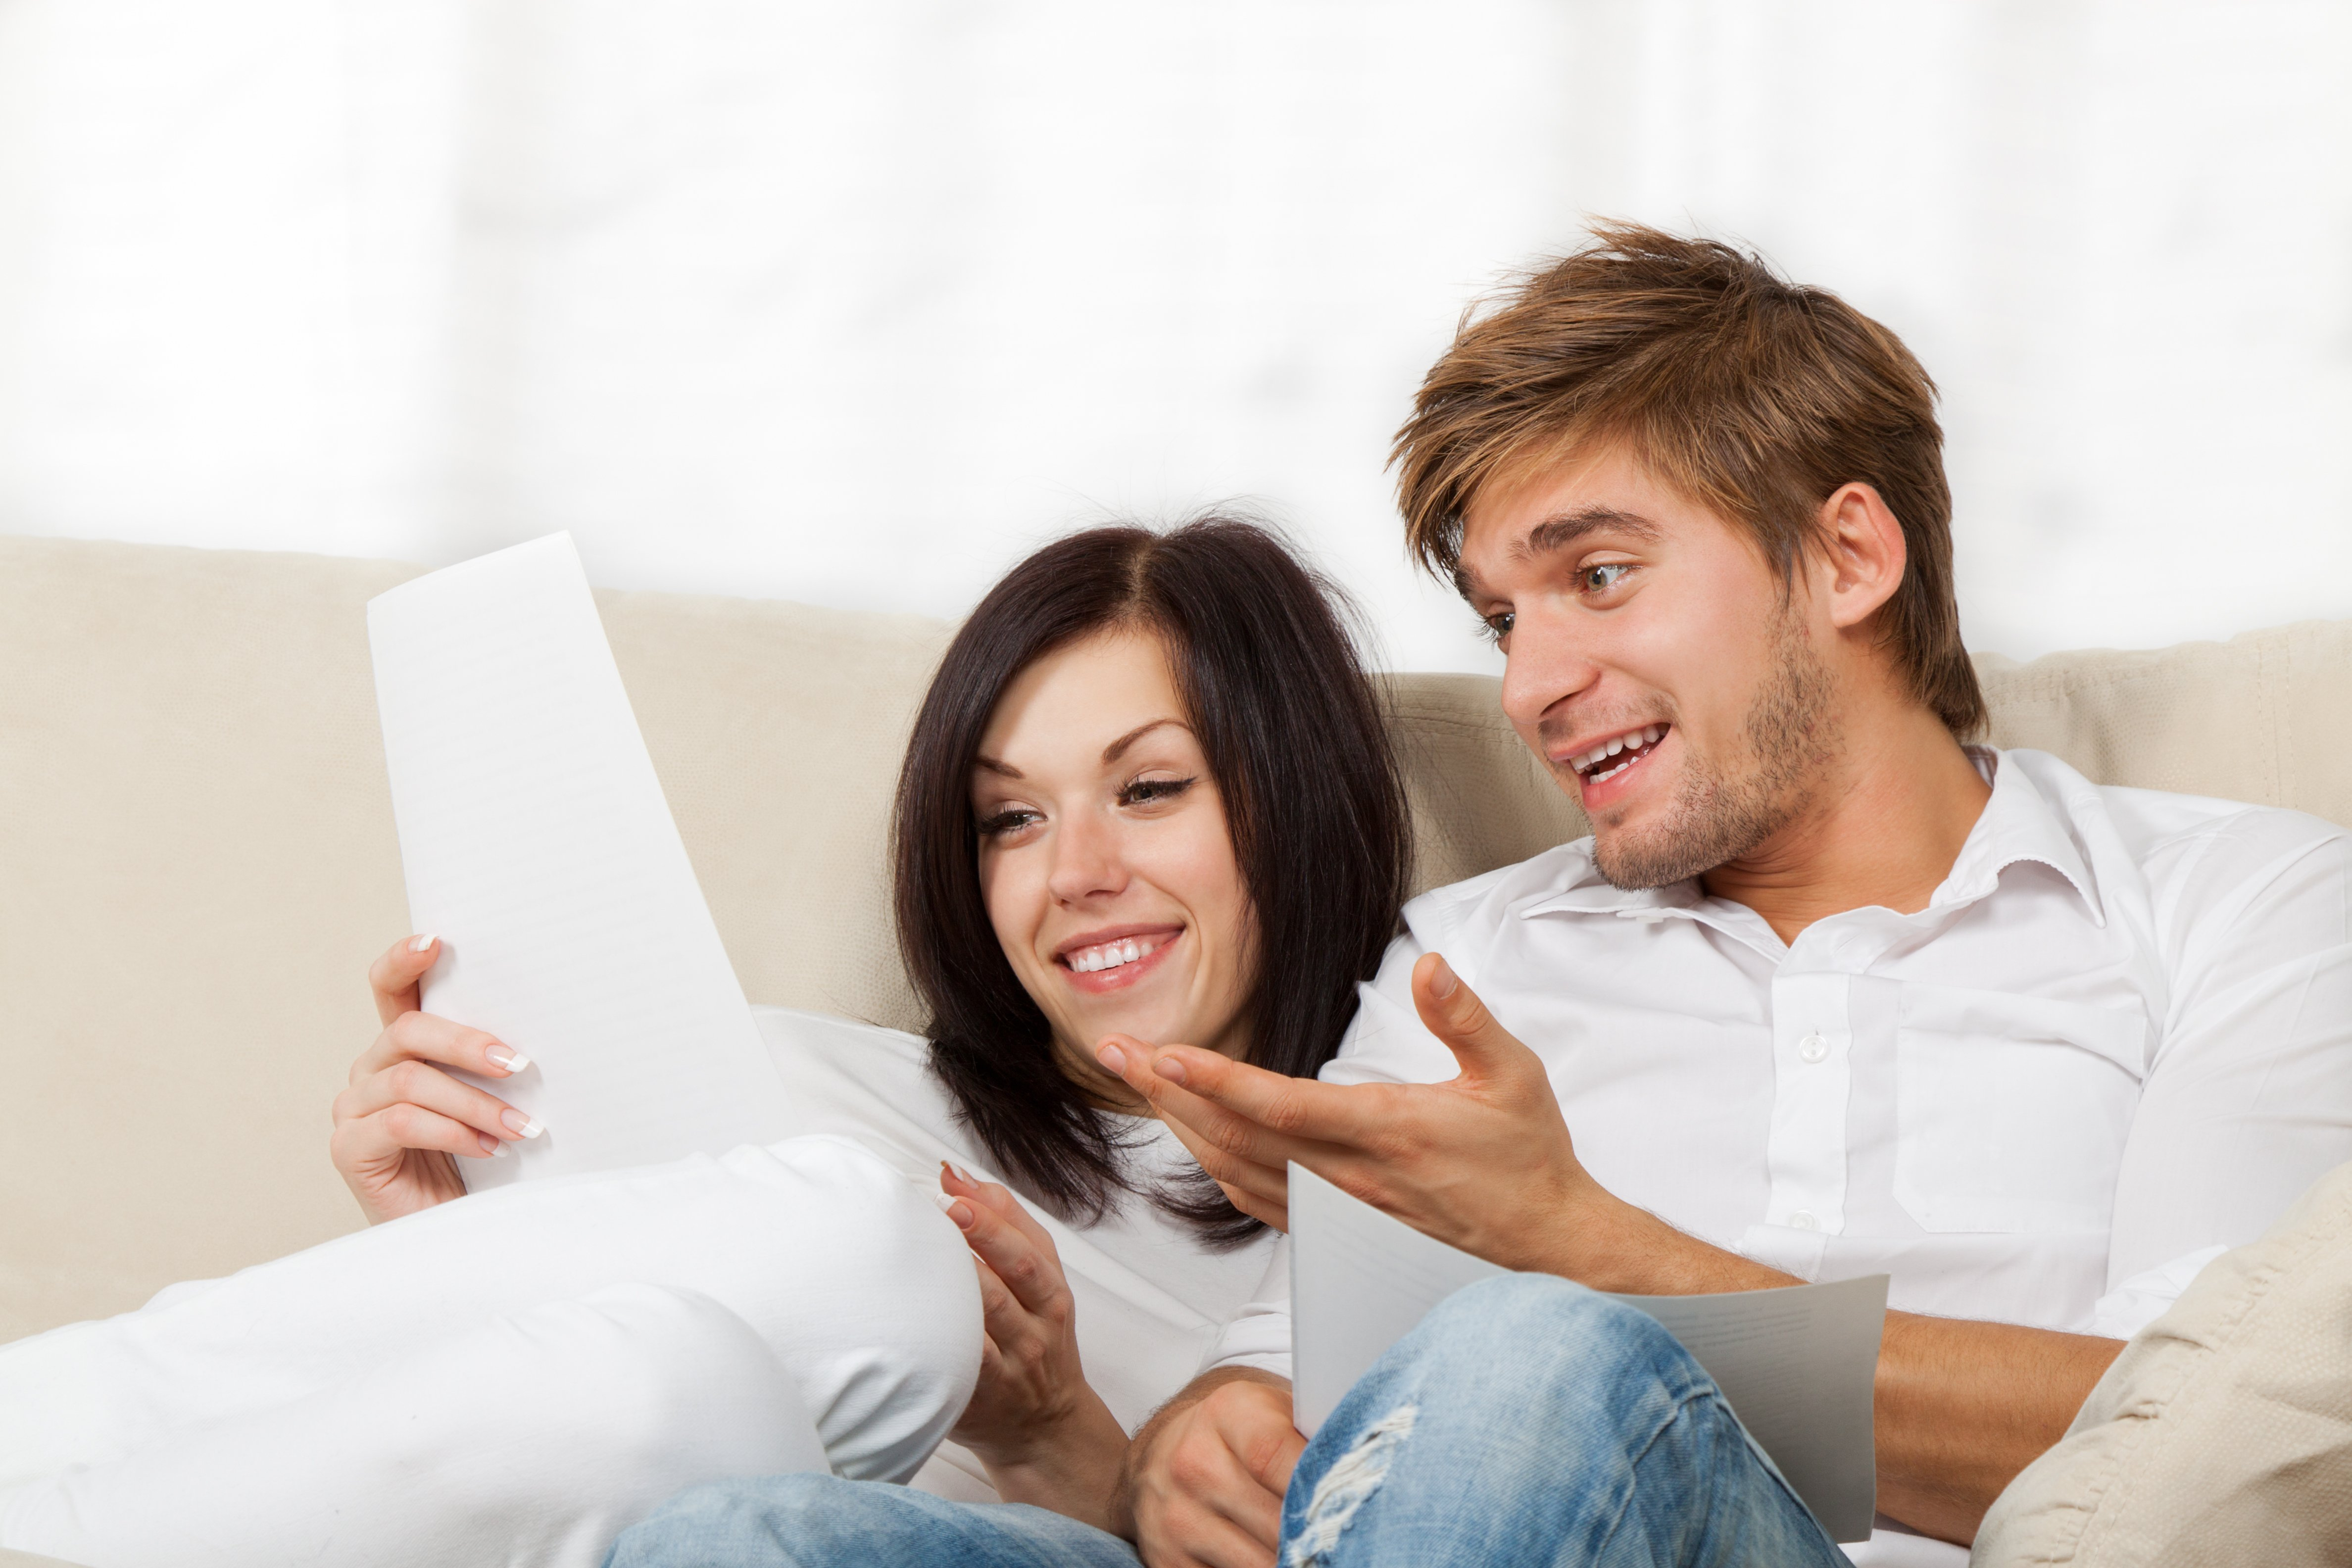 Happy couple reading a letter in their living room, young smile man and woman sitting on couch | Photo: Shutterstock.com